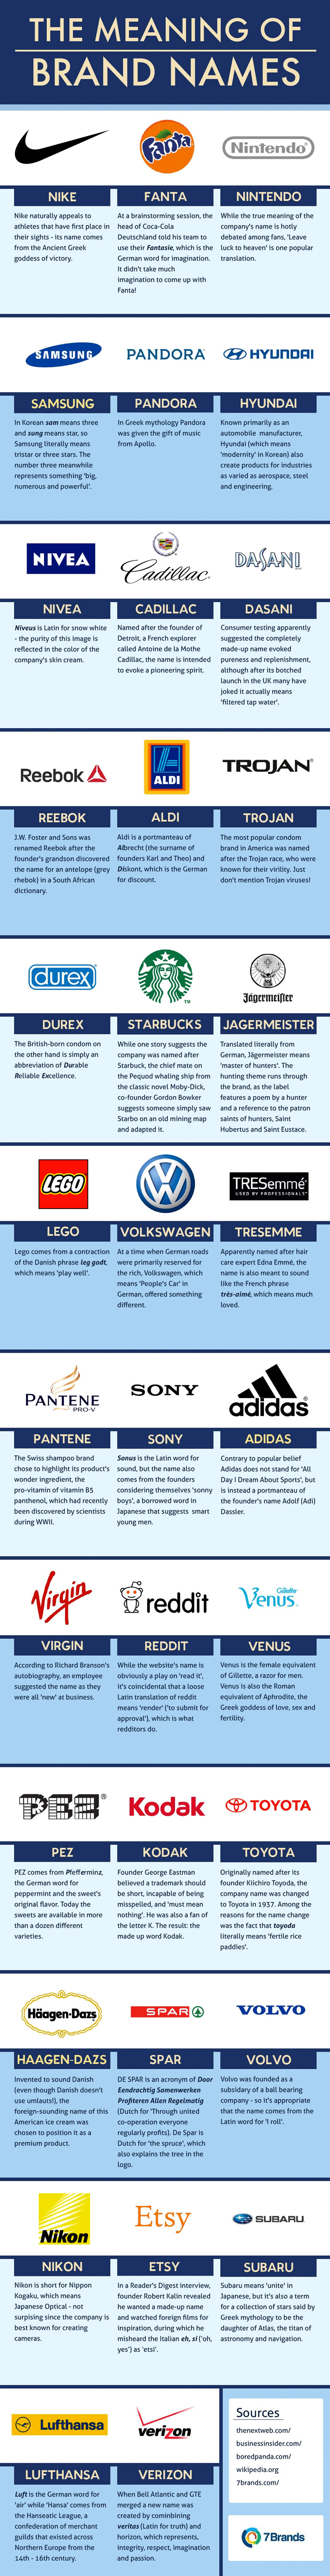 how-famous-brands-got-their-names-logos-infographic